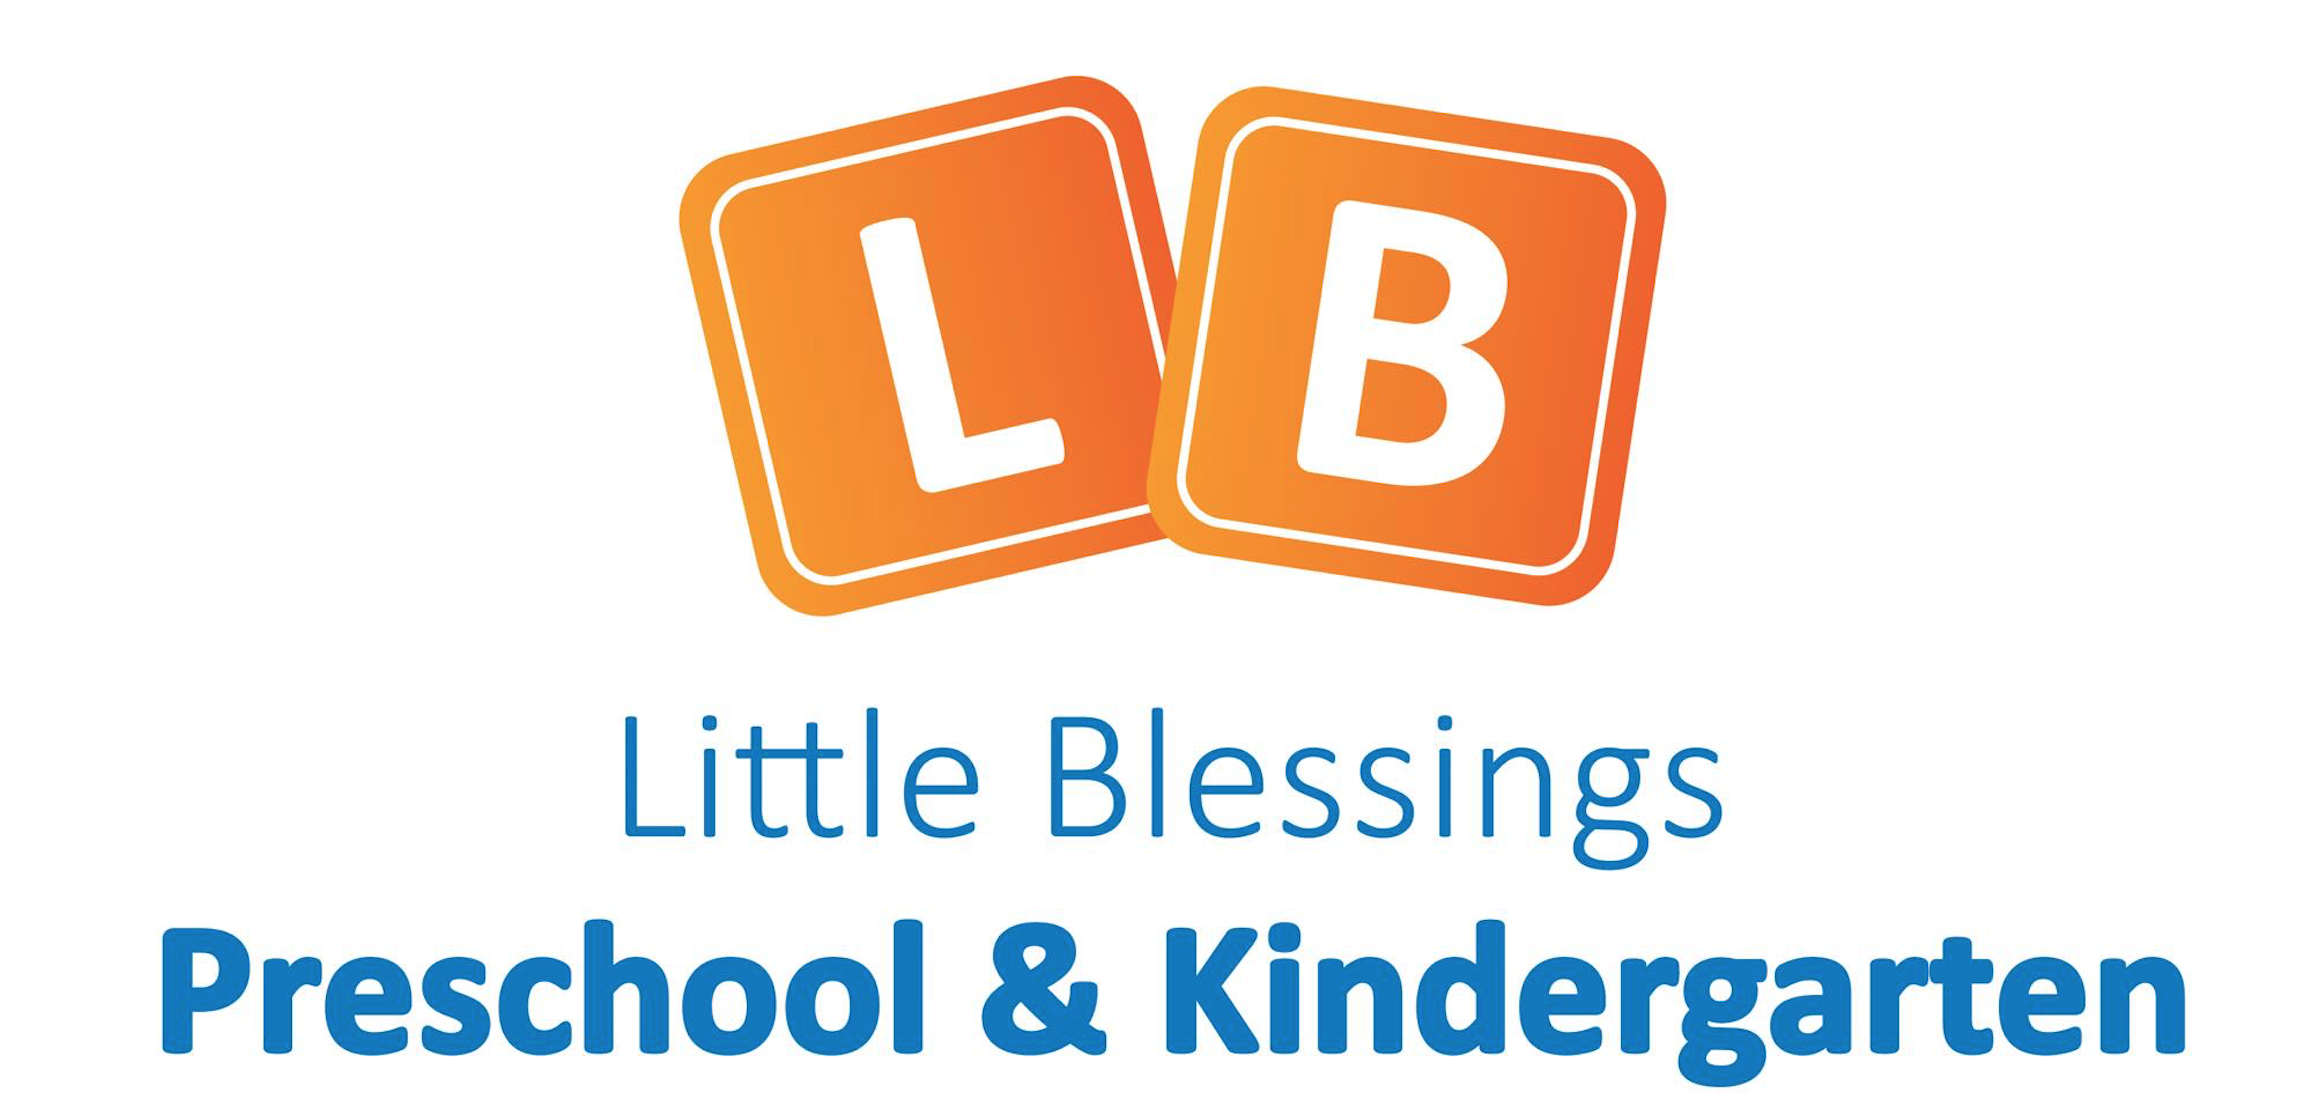 Little Blessings Preschool & Kindergarten